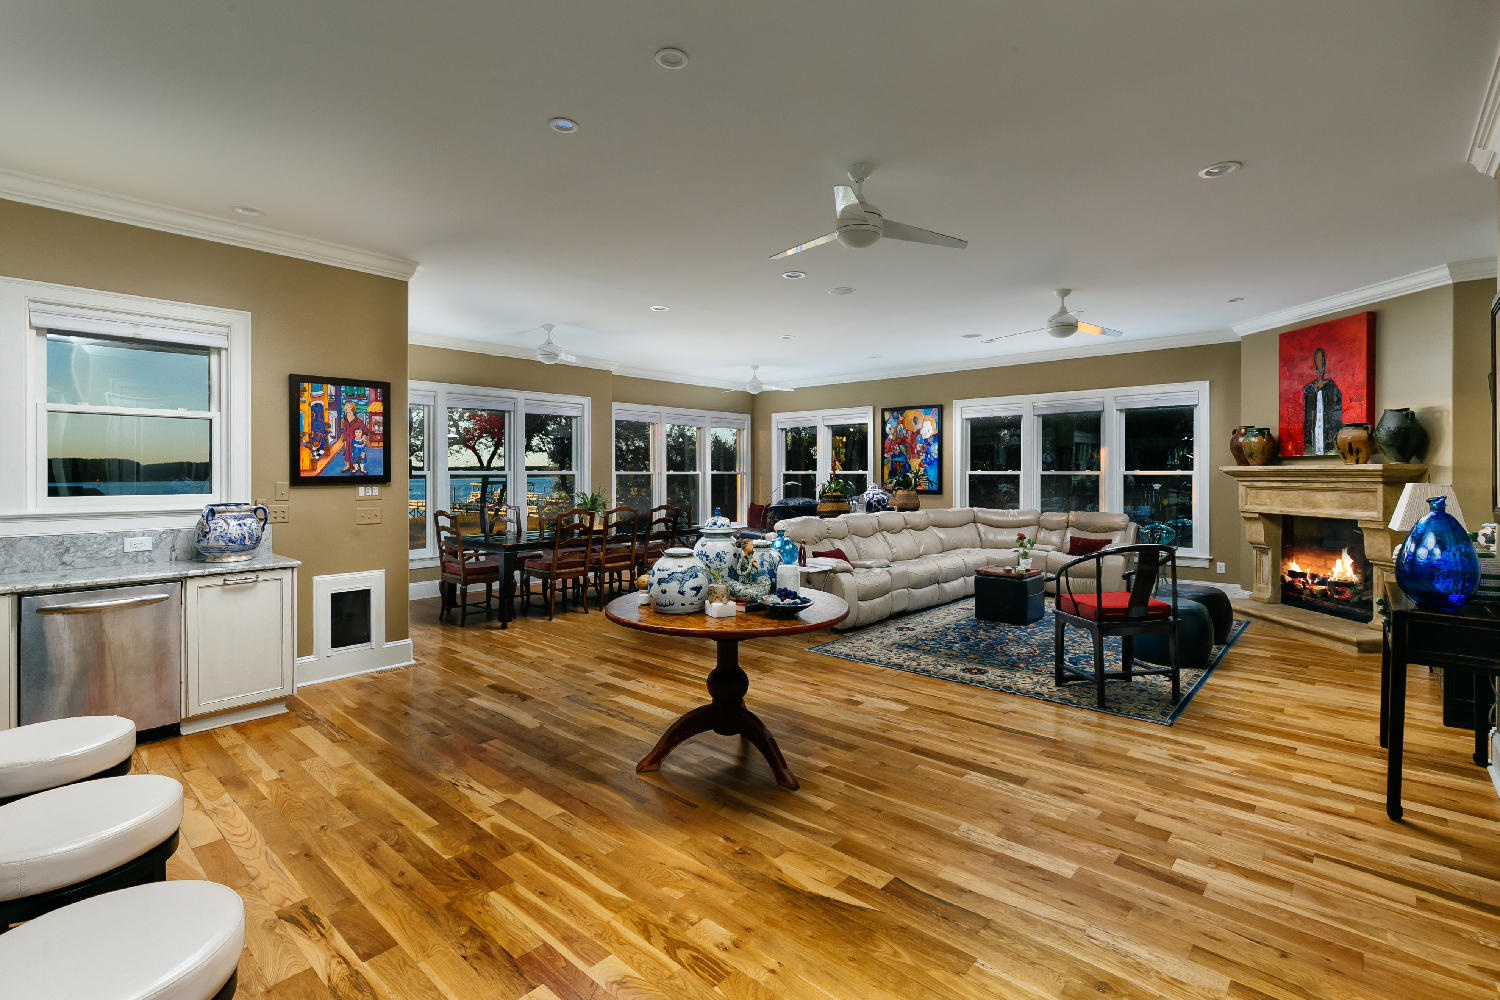 Rivertowne On The Wando Homes For Sale - 2212 Hartfords Bluff, Mount Pleasant, SC - 46